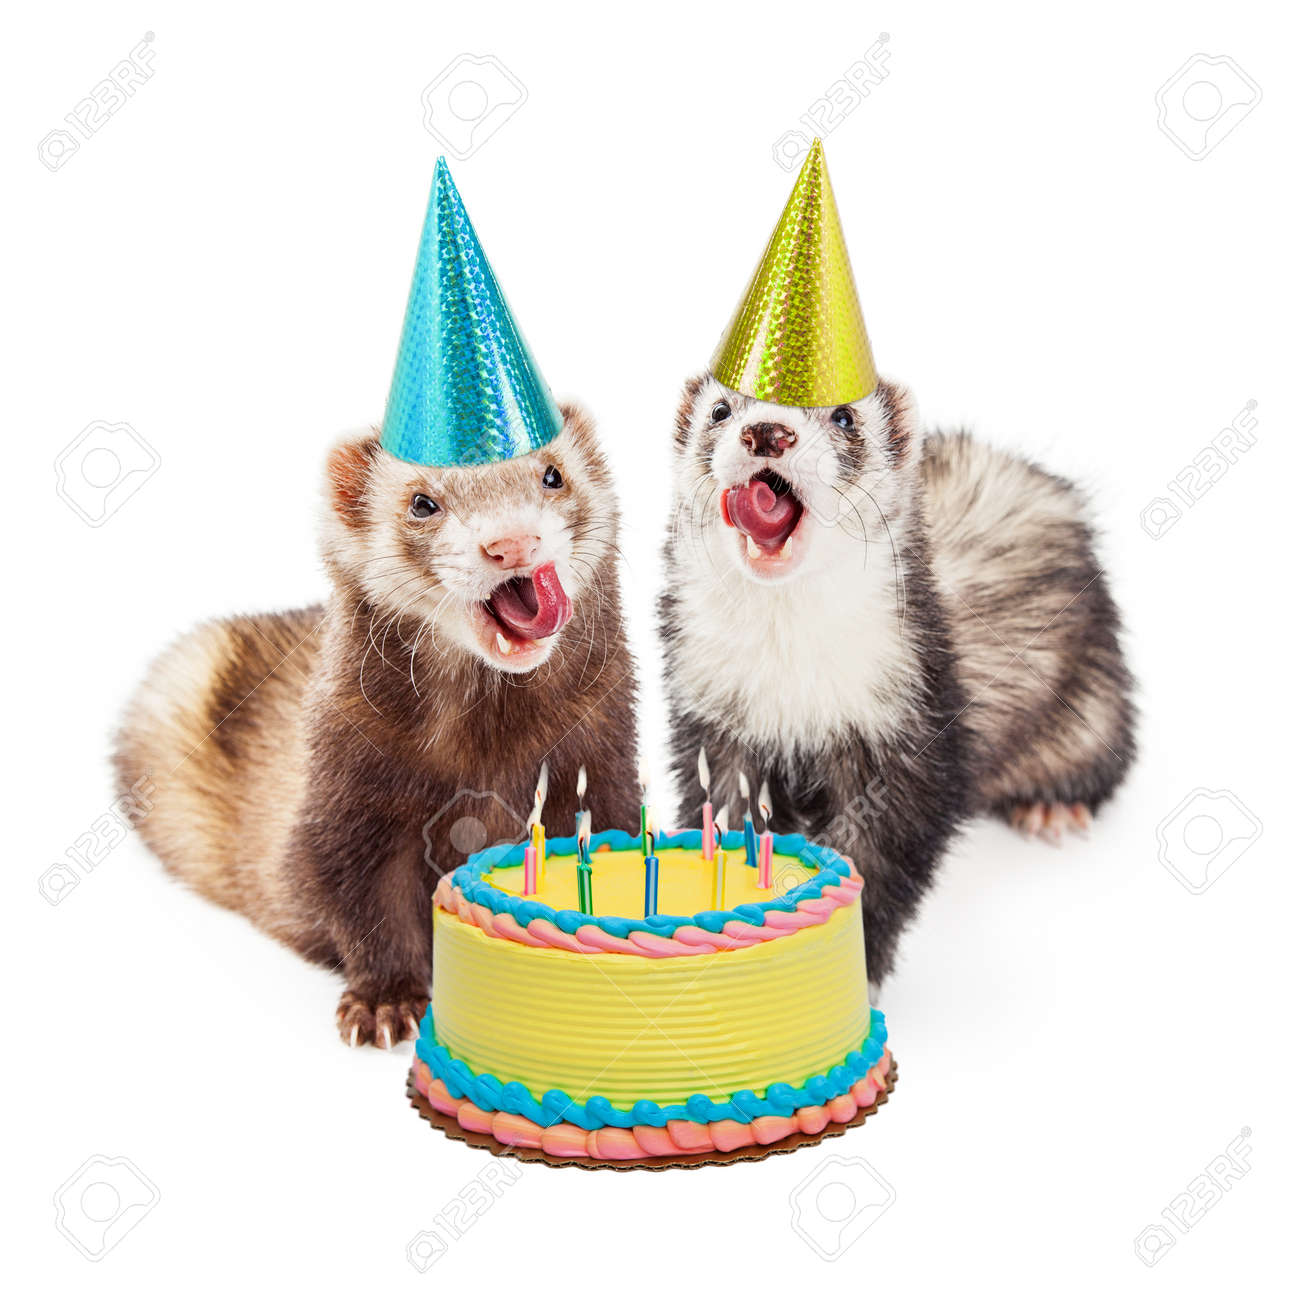 Two Funny Ferrets With Birthday Hats And Cake Mouths Open